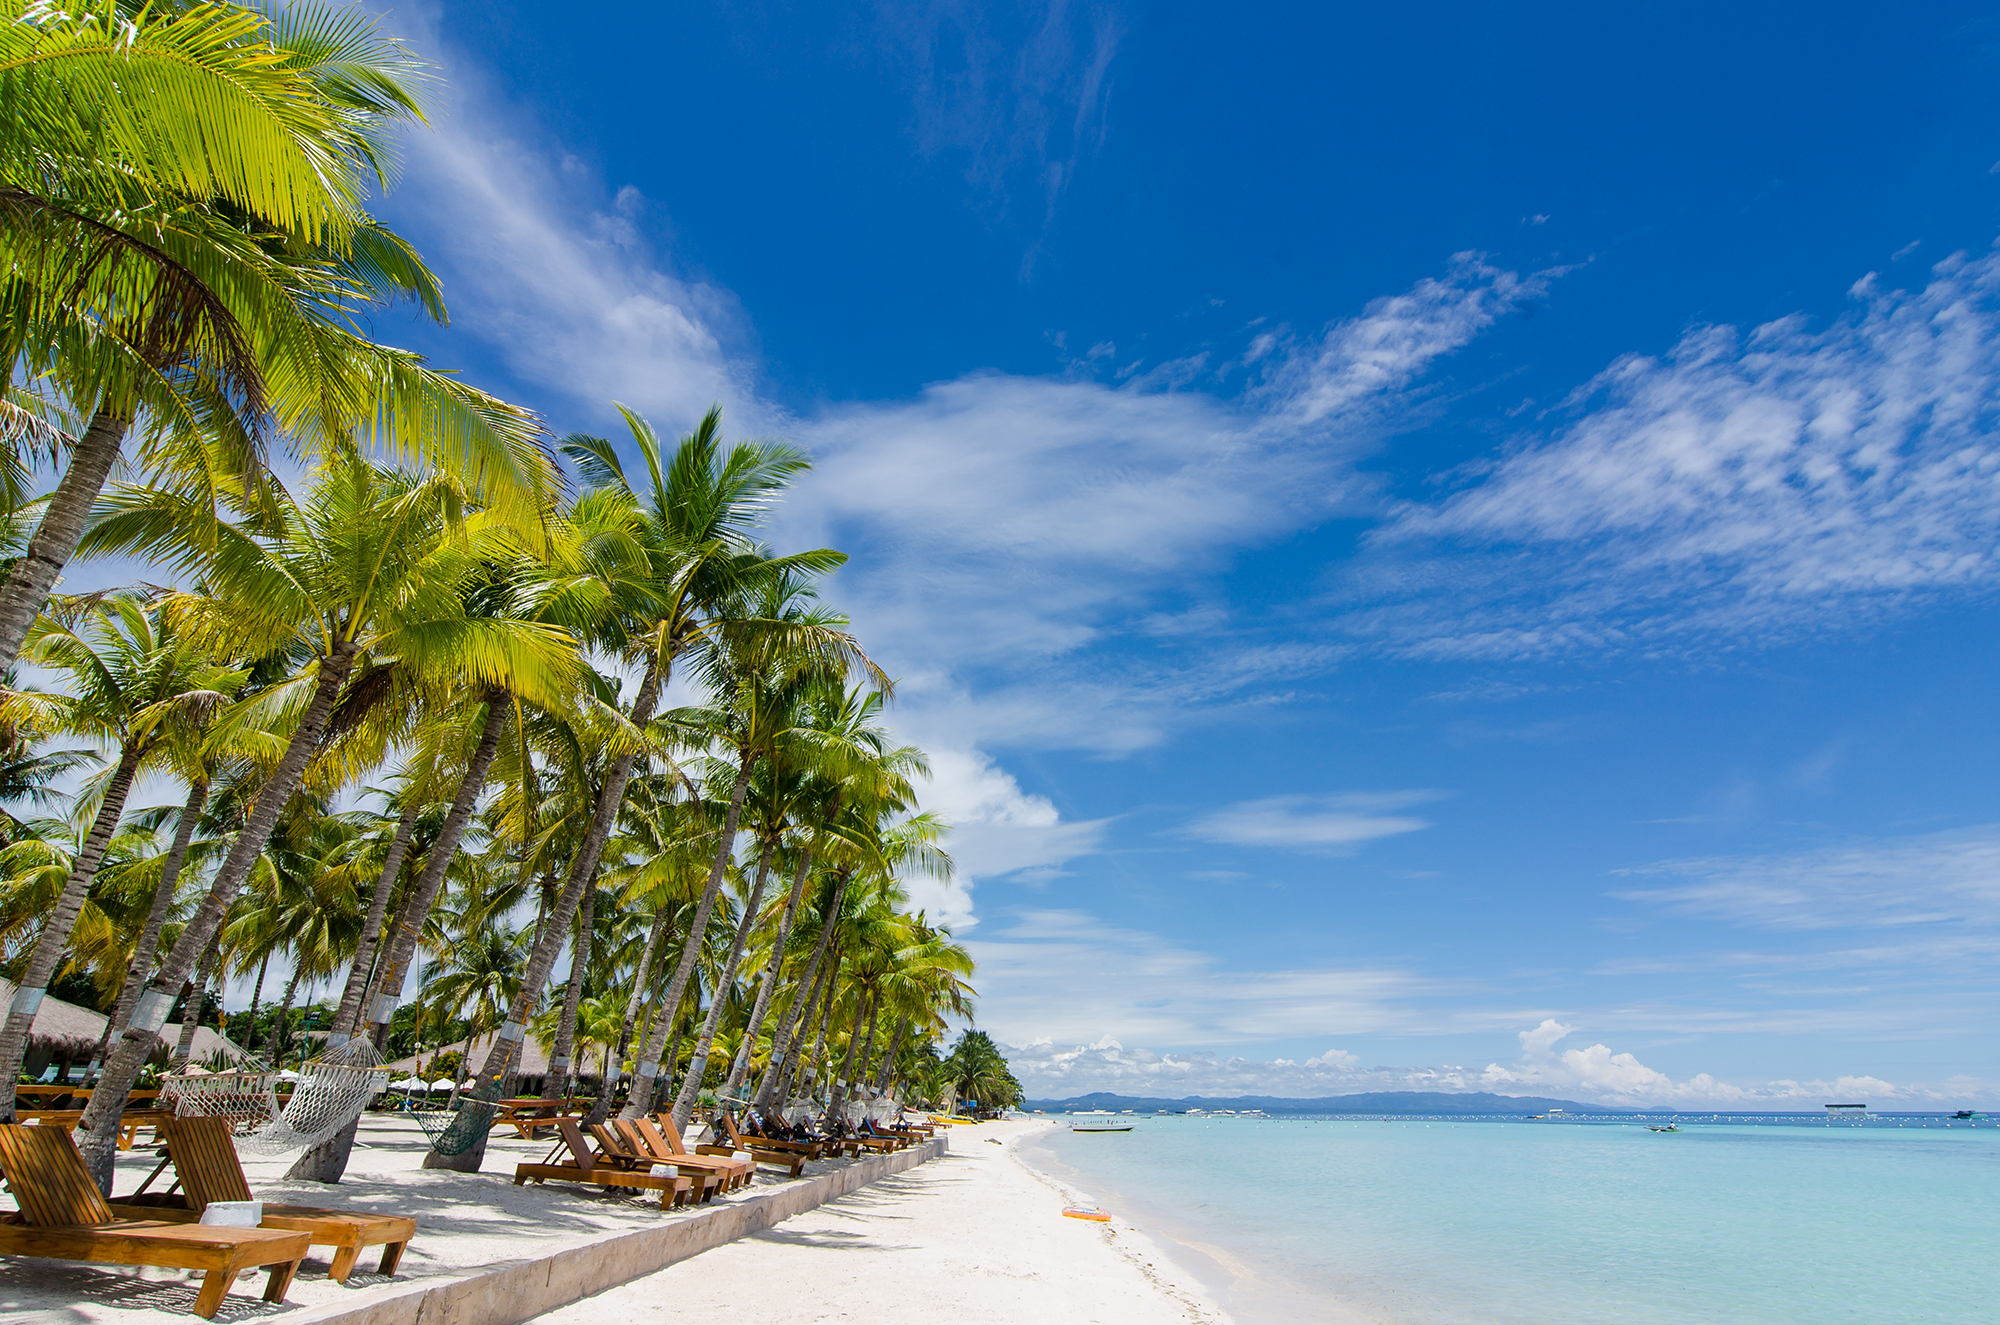 Bohol Beach Club Resort In Panglao Island Philippines